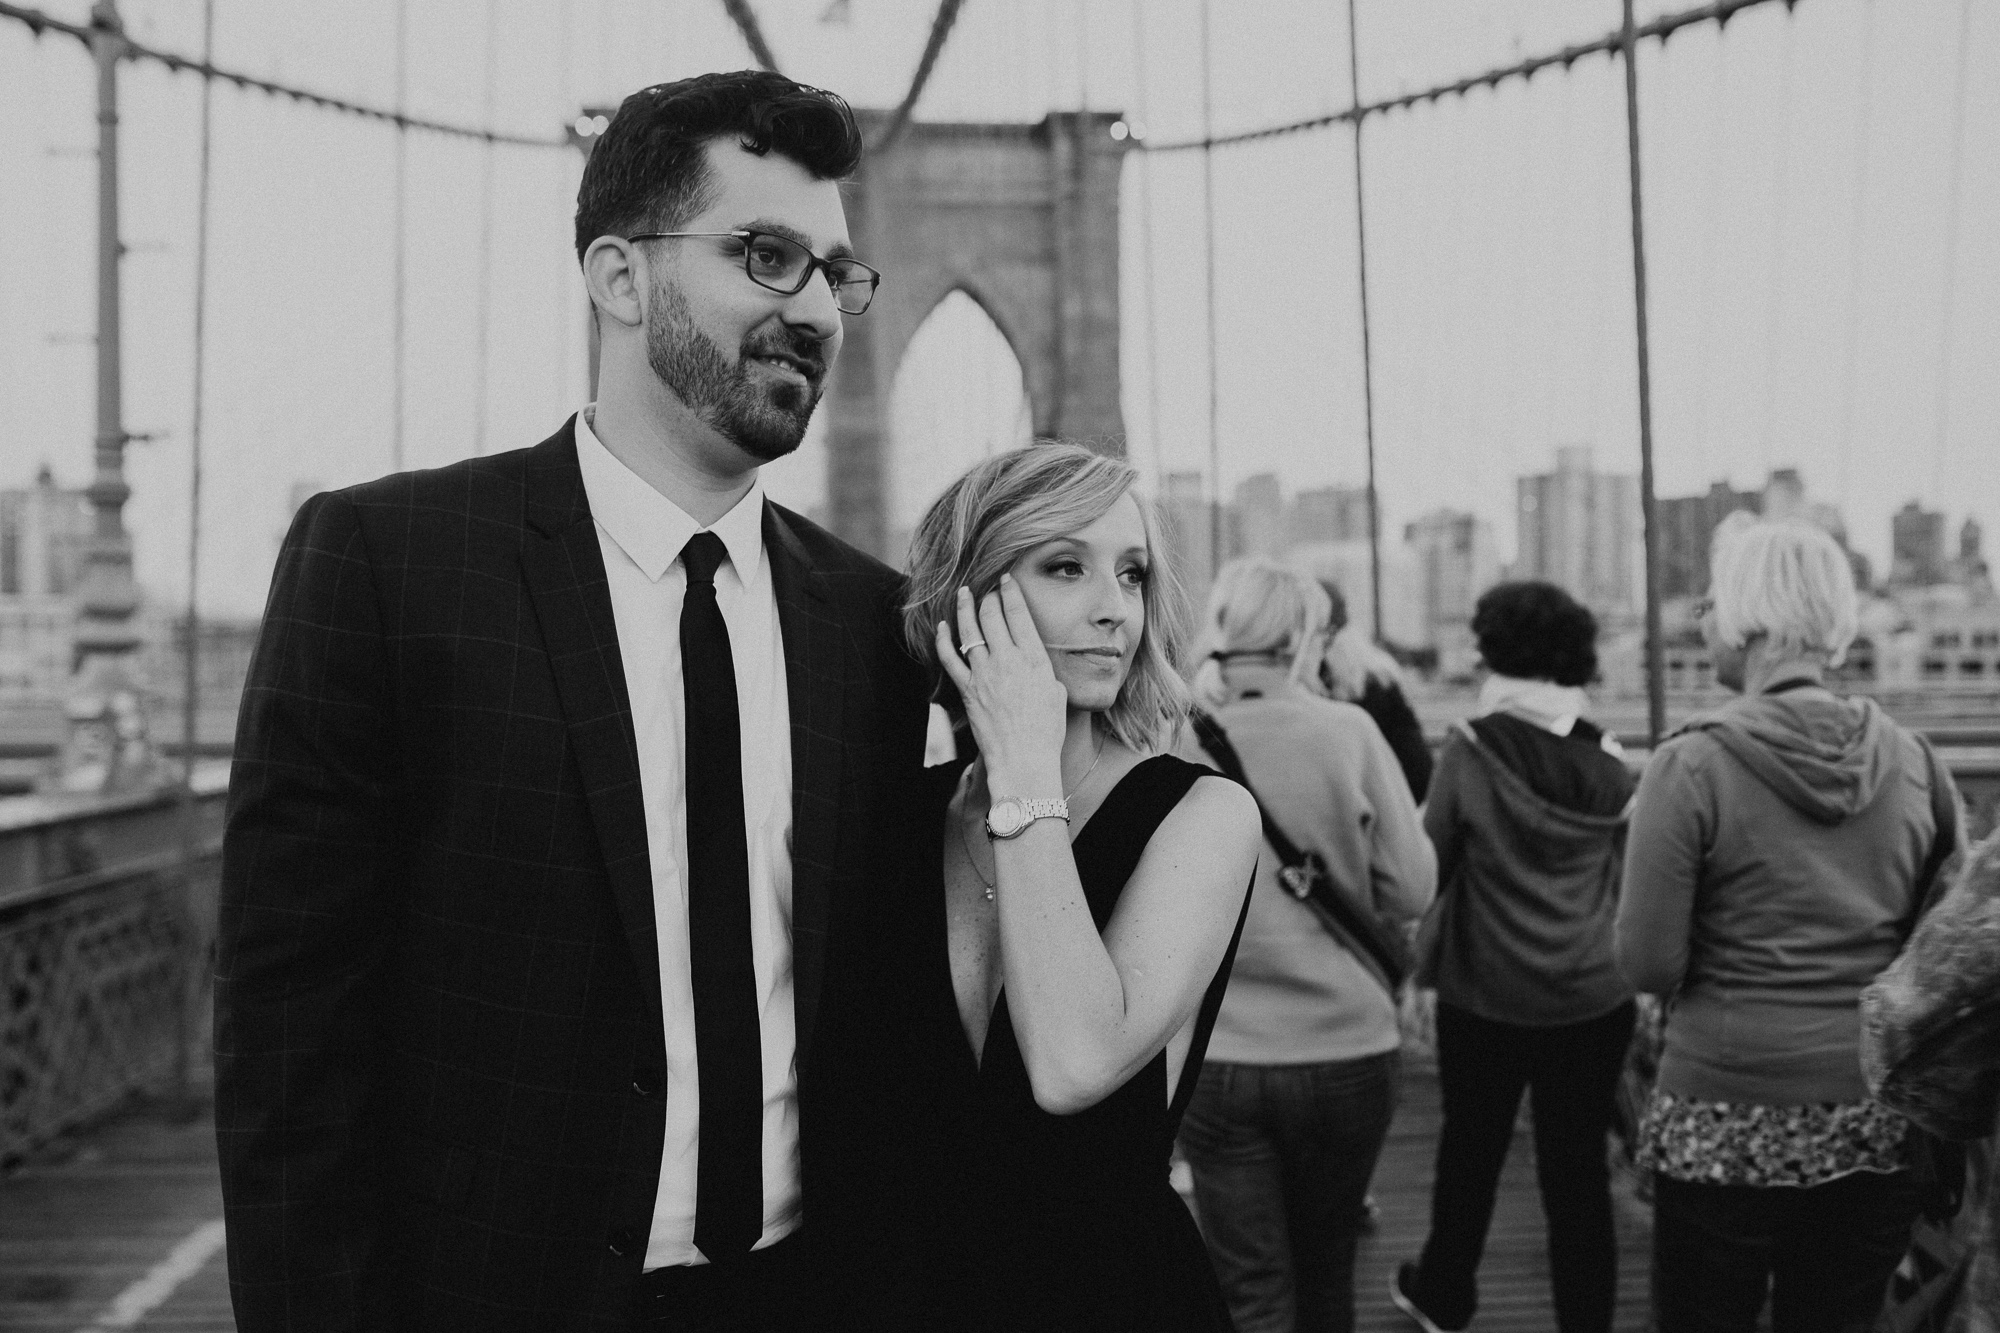 brooklyn_nyc_engagement_photography-75-of-83.jpg